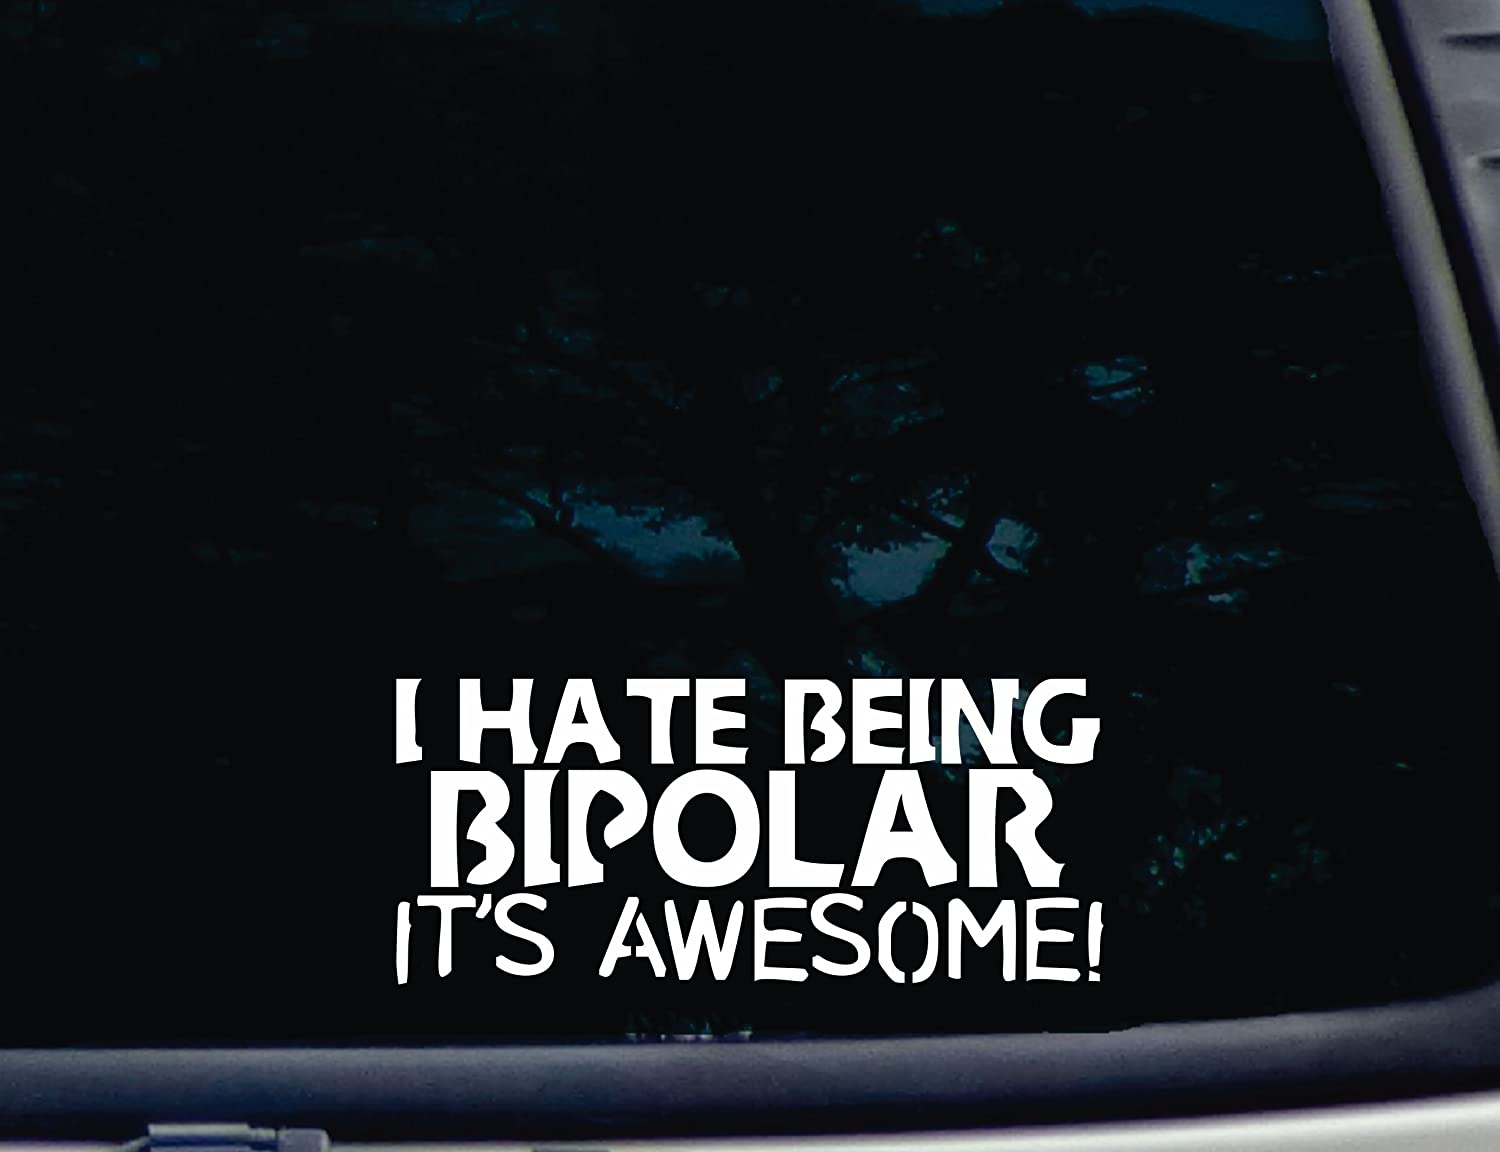 truck tool box 8 x 3 1//2 die cut vinyl decal for window virtually any hard smooth surface car I hate being BIPOLAR Its AWESOME!